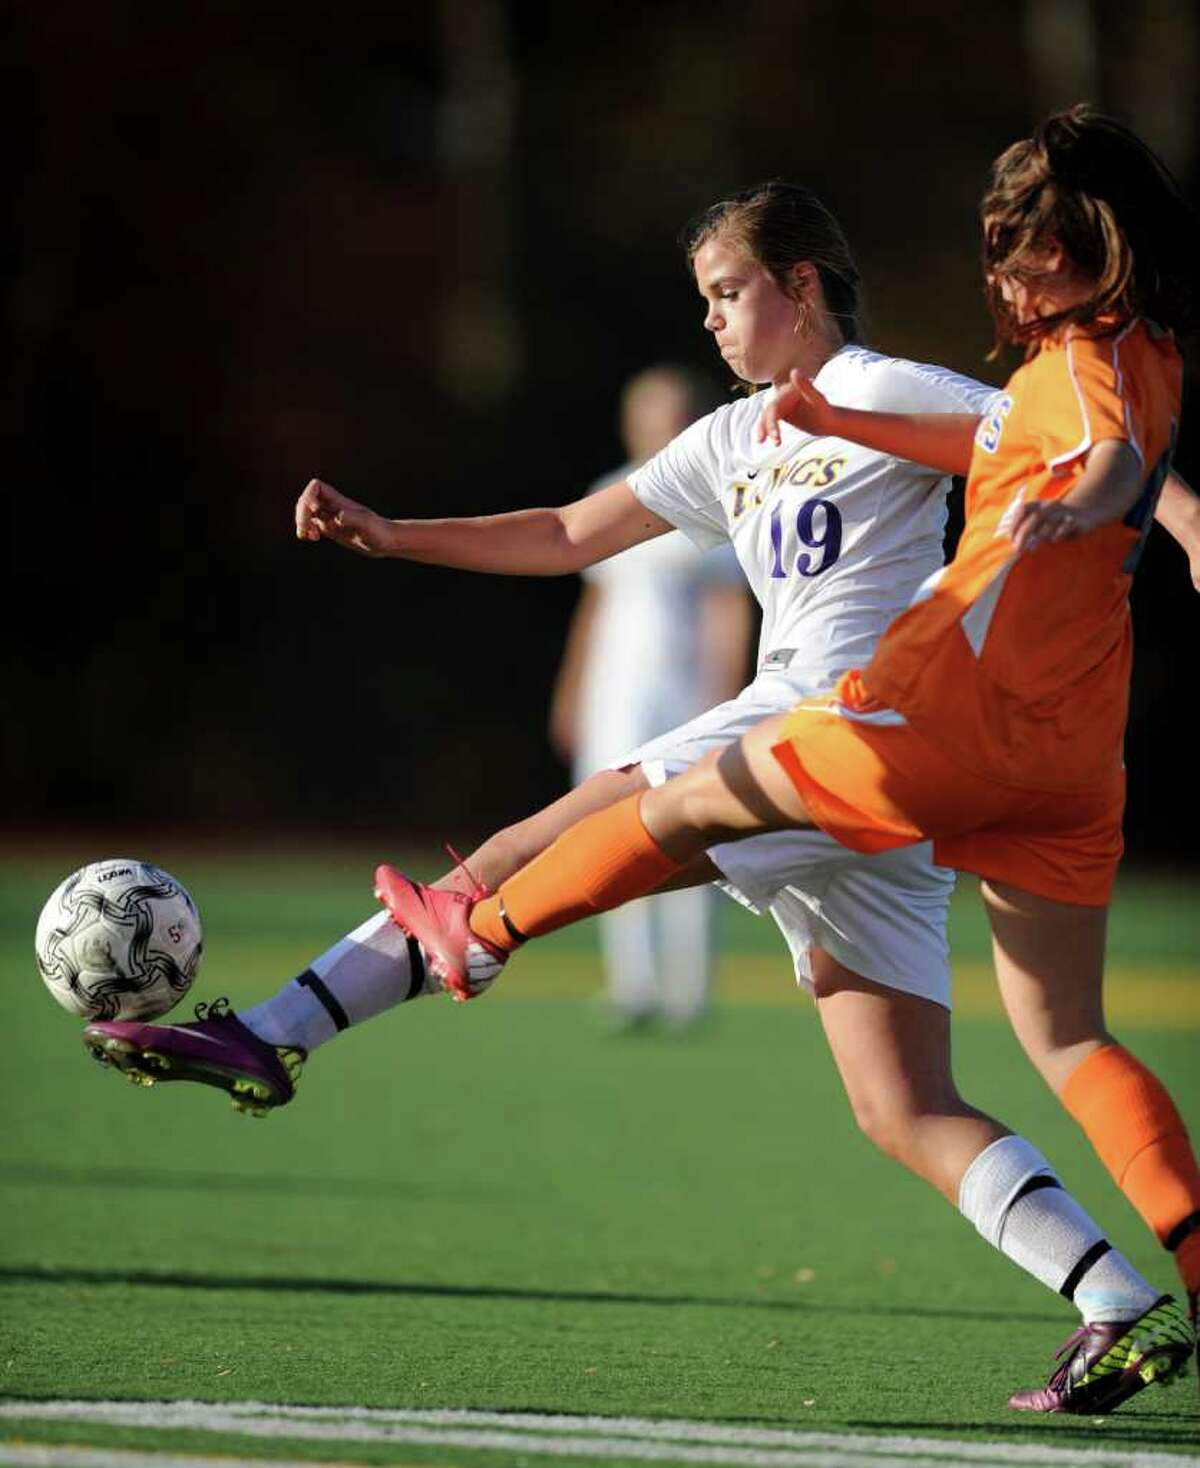 Westhill's Jess Laszlo controls the ball as Danbury's Elizabeth Howe defends during the first round class LL state playoff soccer match Thursday, Nov. 10, 2011 at the Westhill campus.